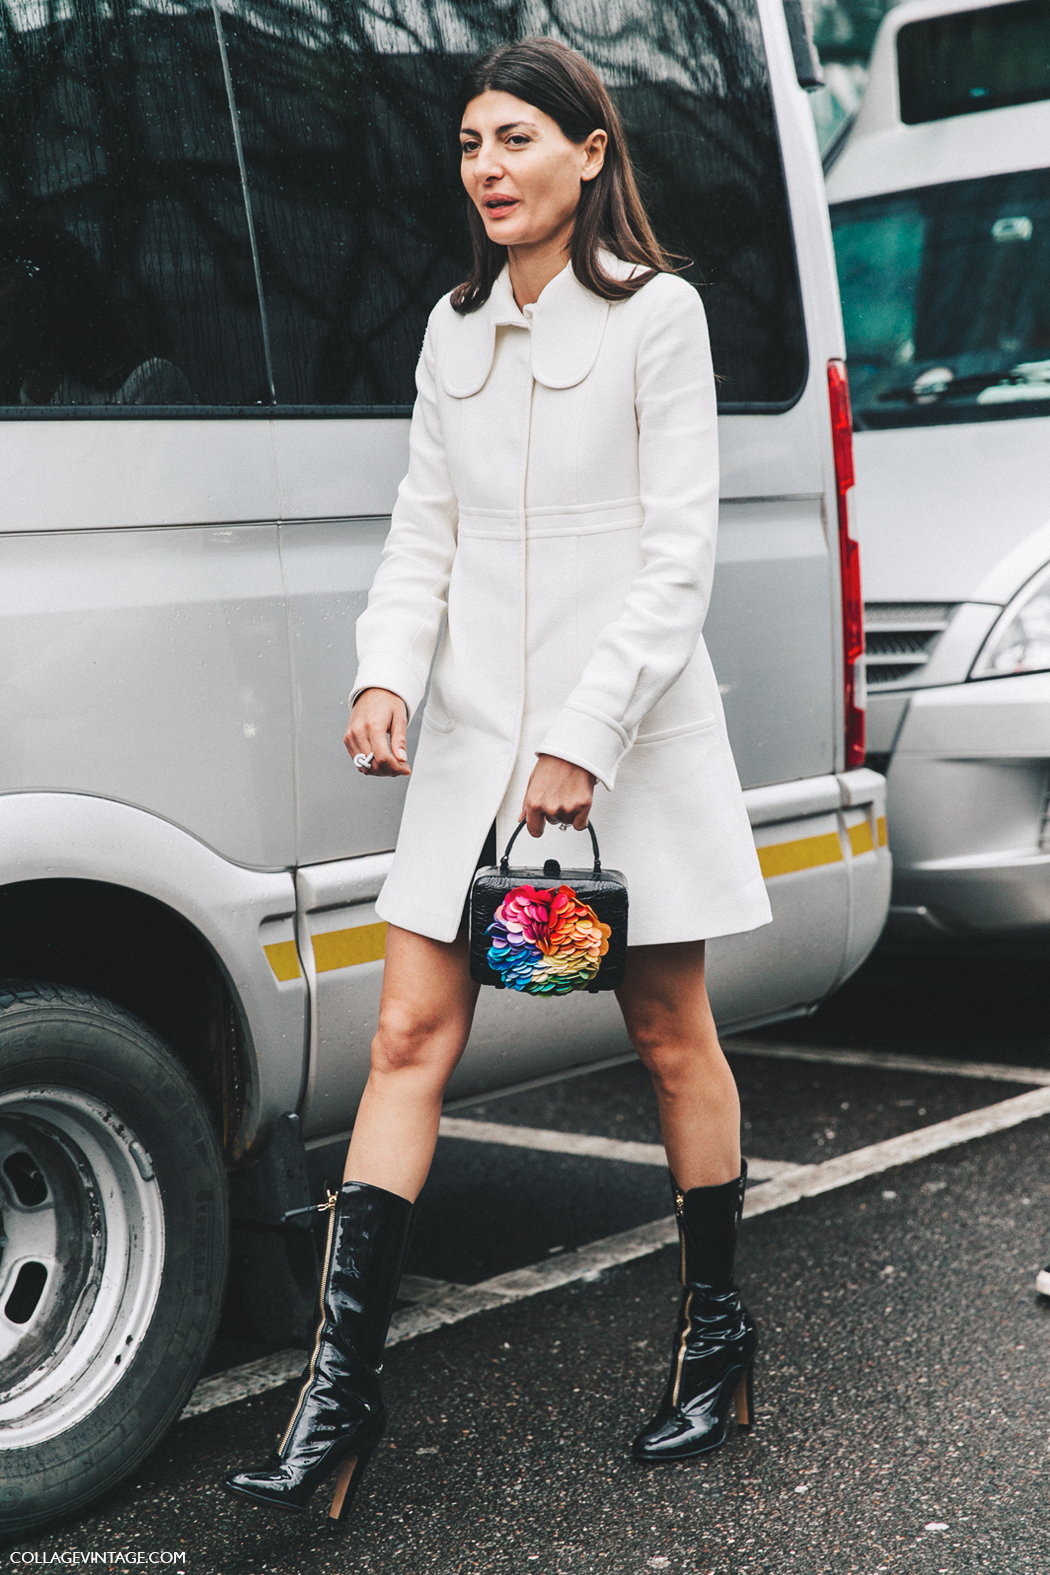 Milan_Fashion_Week_Fall_16-MFW-Street_Style-Collage_Vintage-Giovanna_Battaglia-Zipper_Boots-White_Coat-1